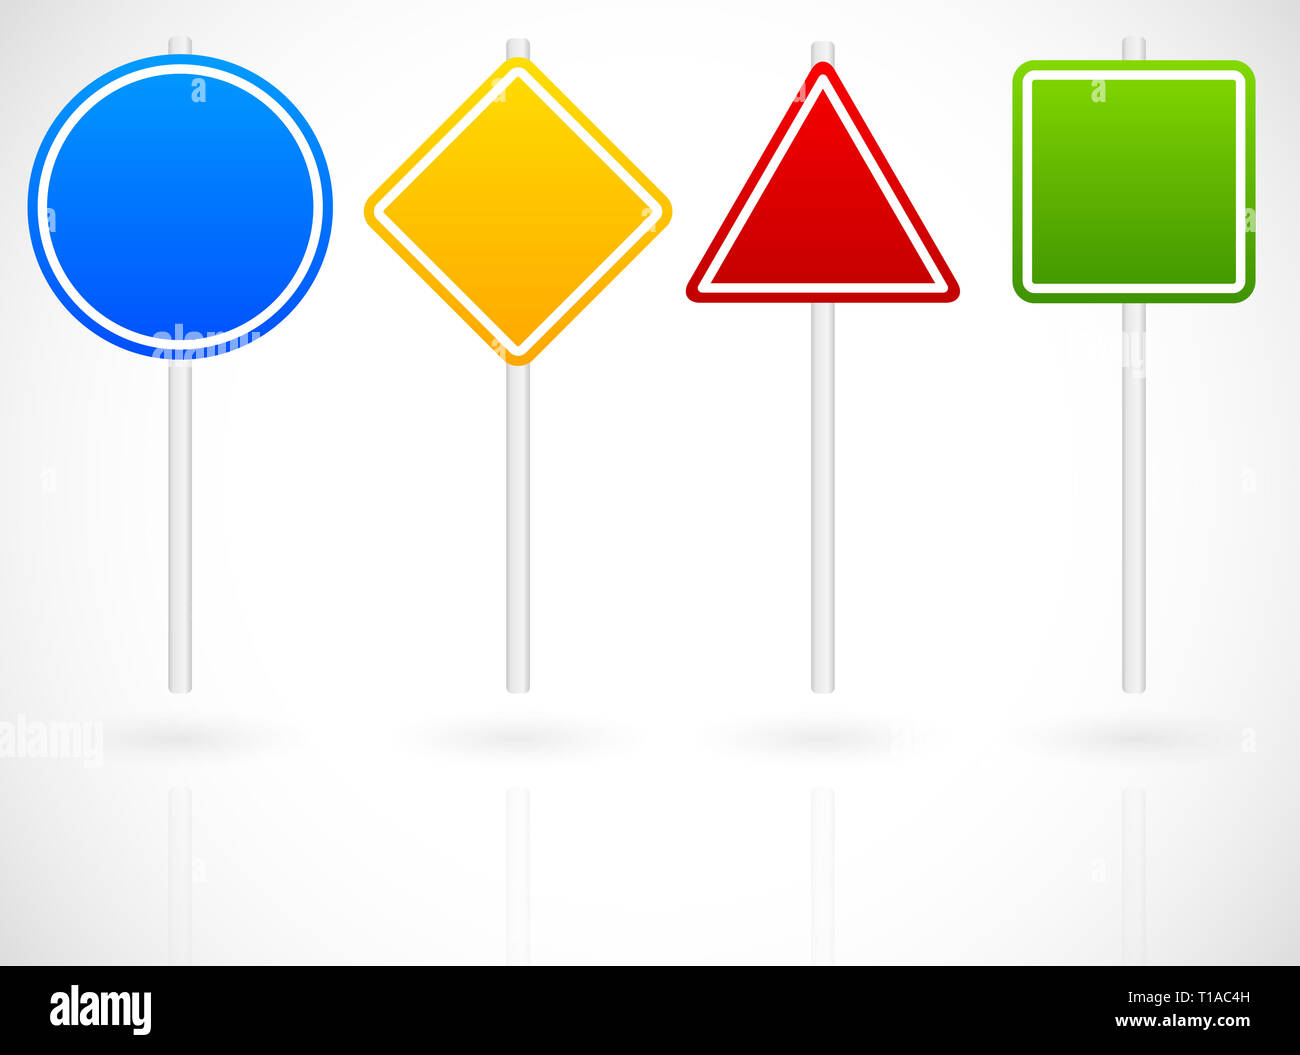 Eps 10 Vector Illustration of Cartoon Like Set of Various Road Signs. Circle, square, triangle, square roadsigns in blue, yellow, red and green on met - Stock Image